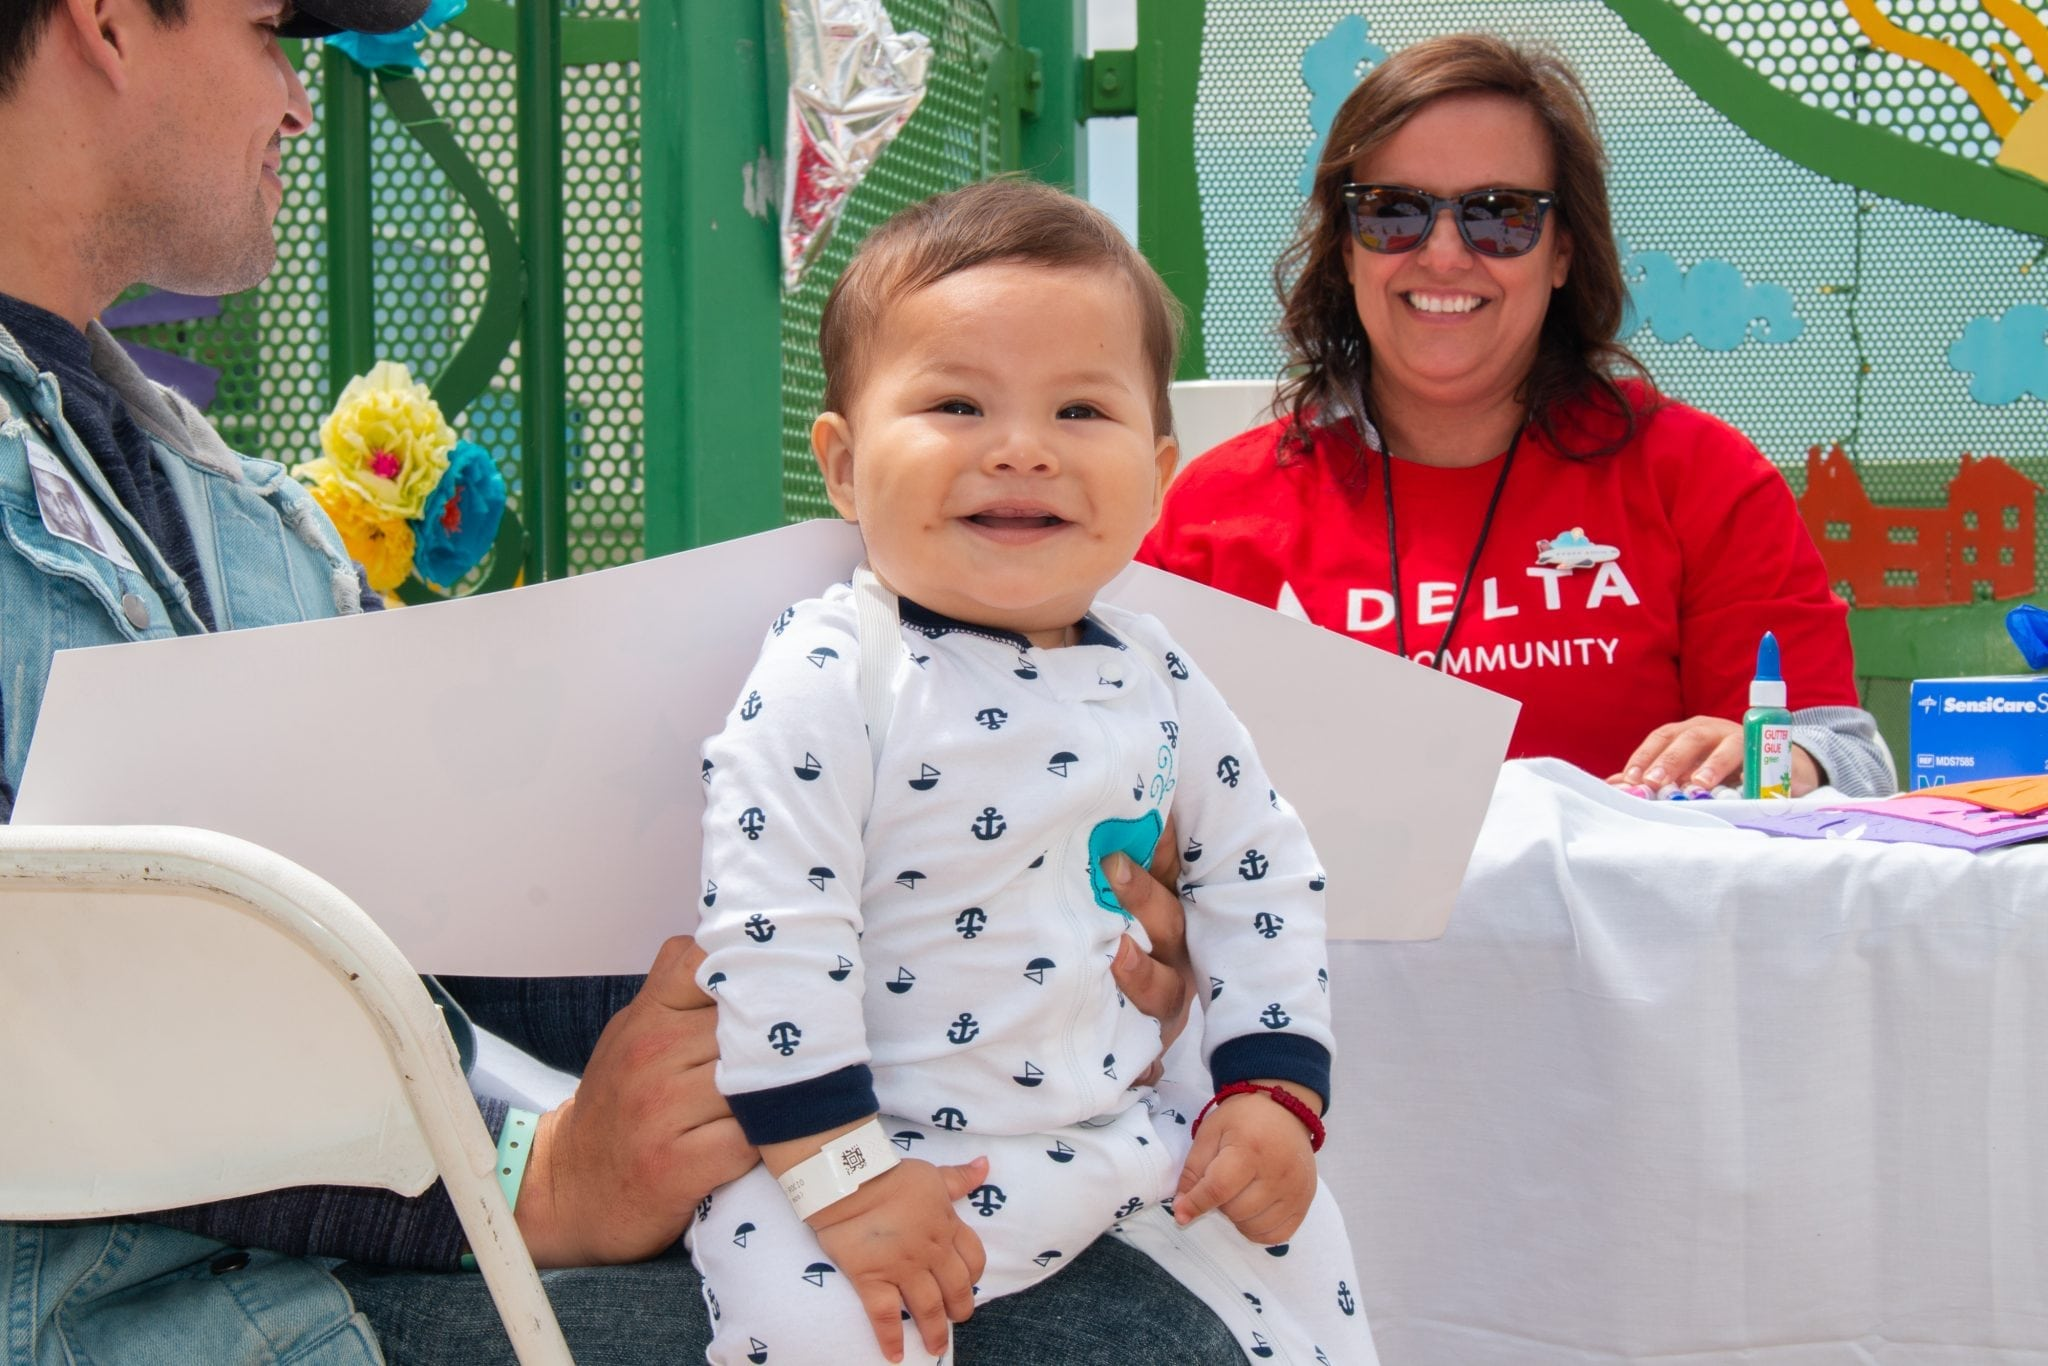 Delta gives wings to Rady Children's patients – Rady ...